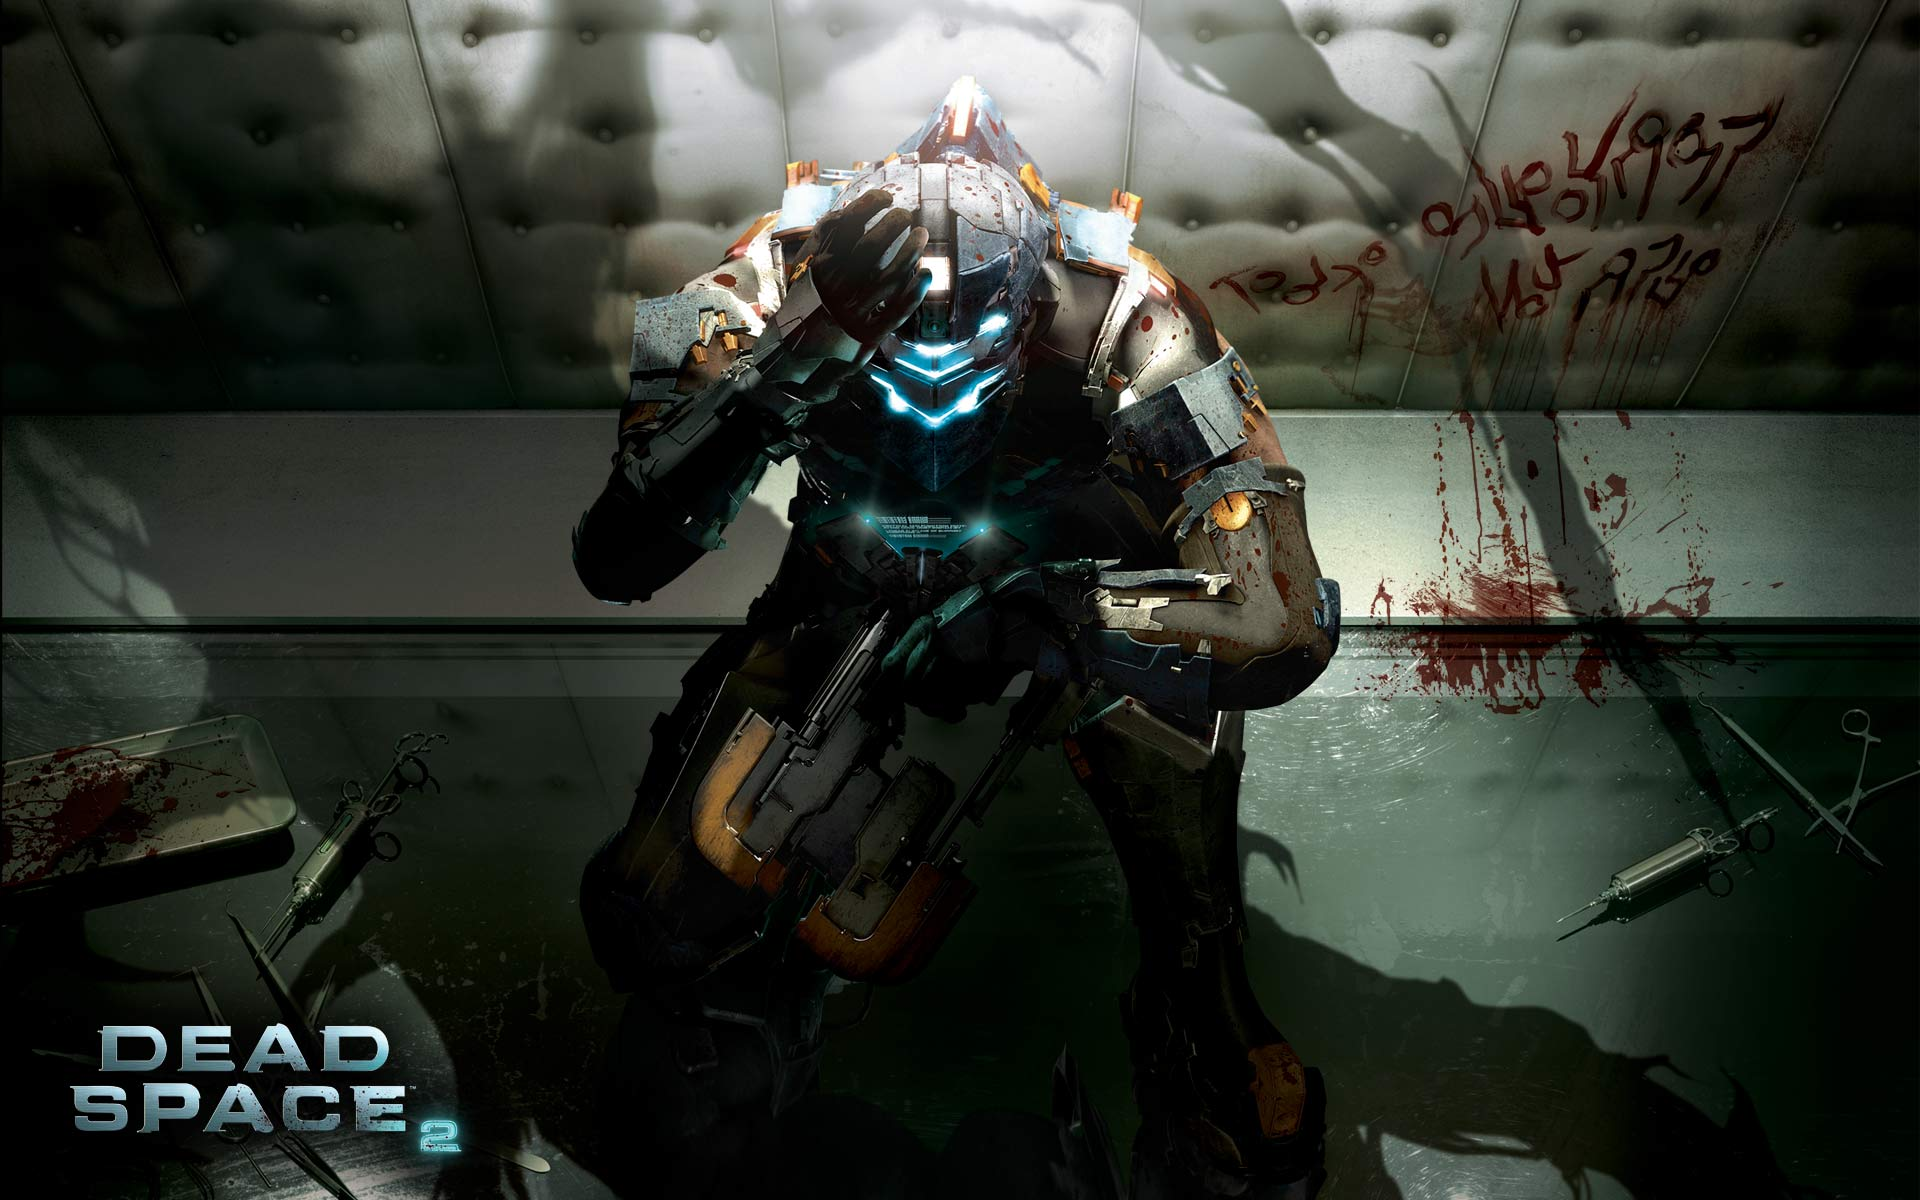 Dead Space Ignition, la pre-cuela de Dead Space 2.